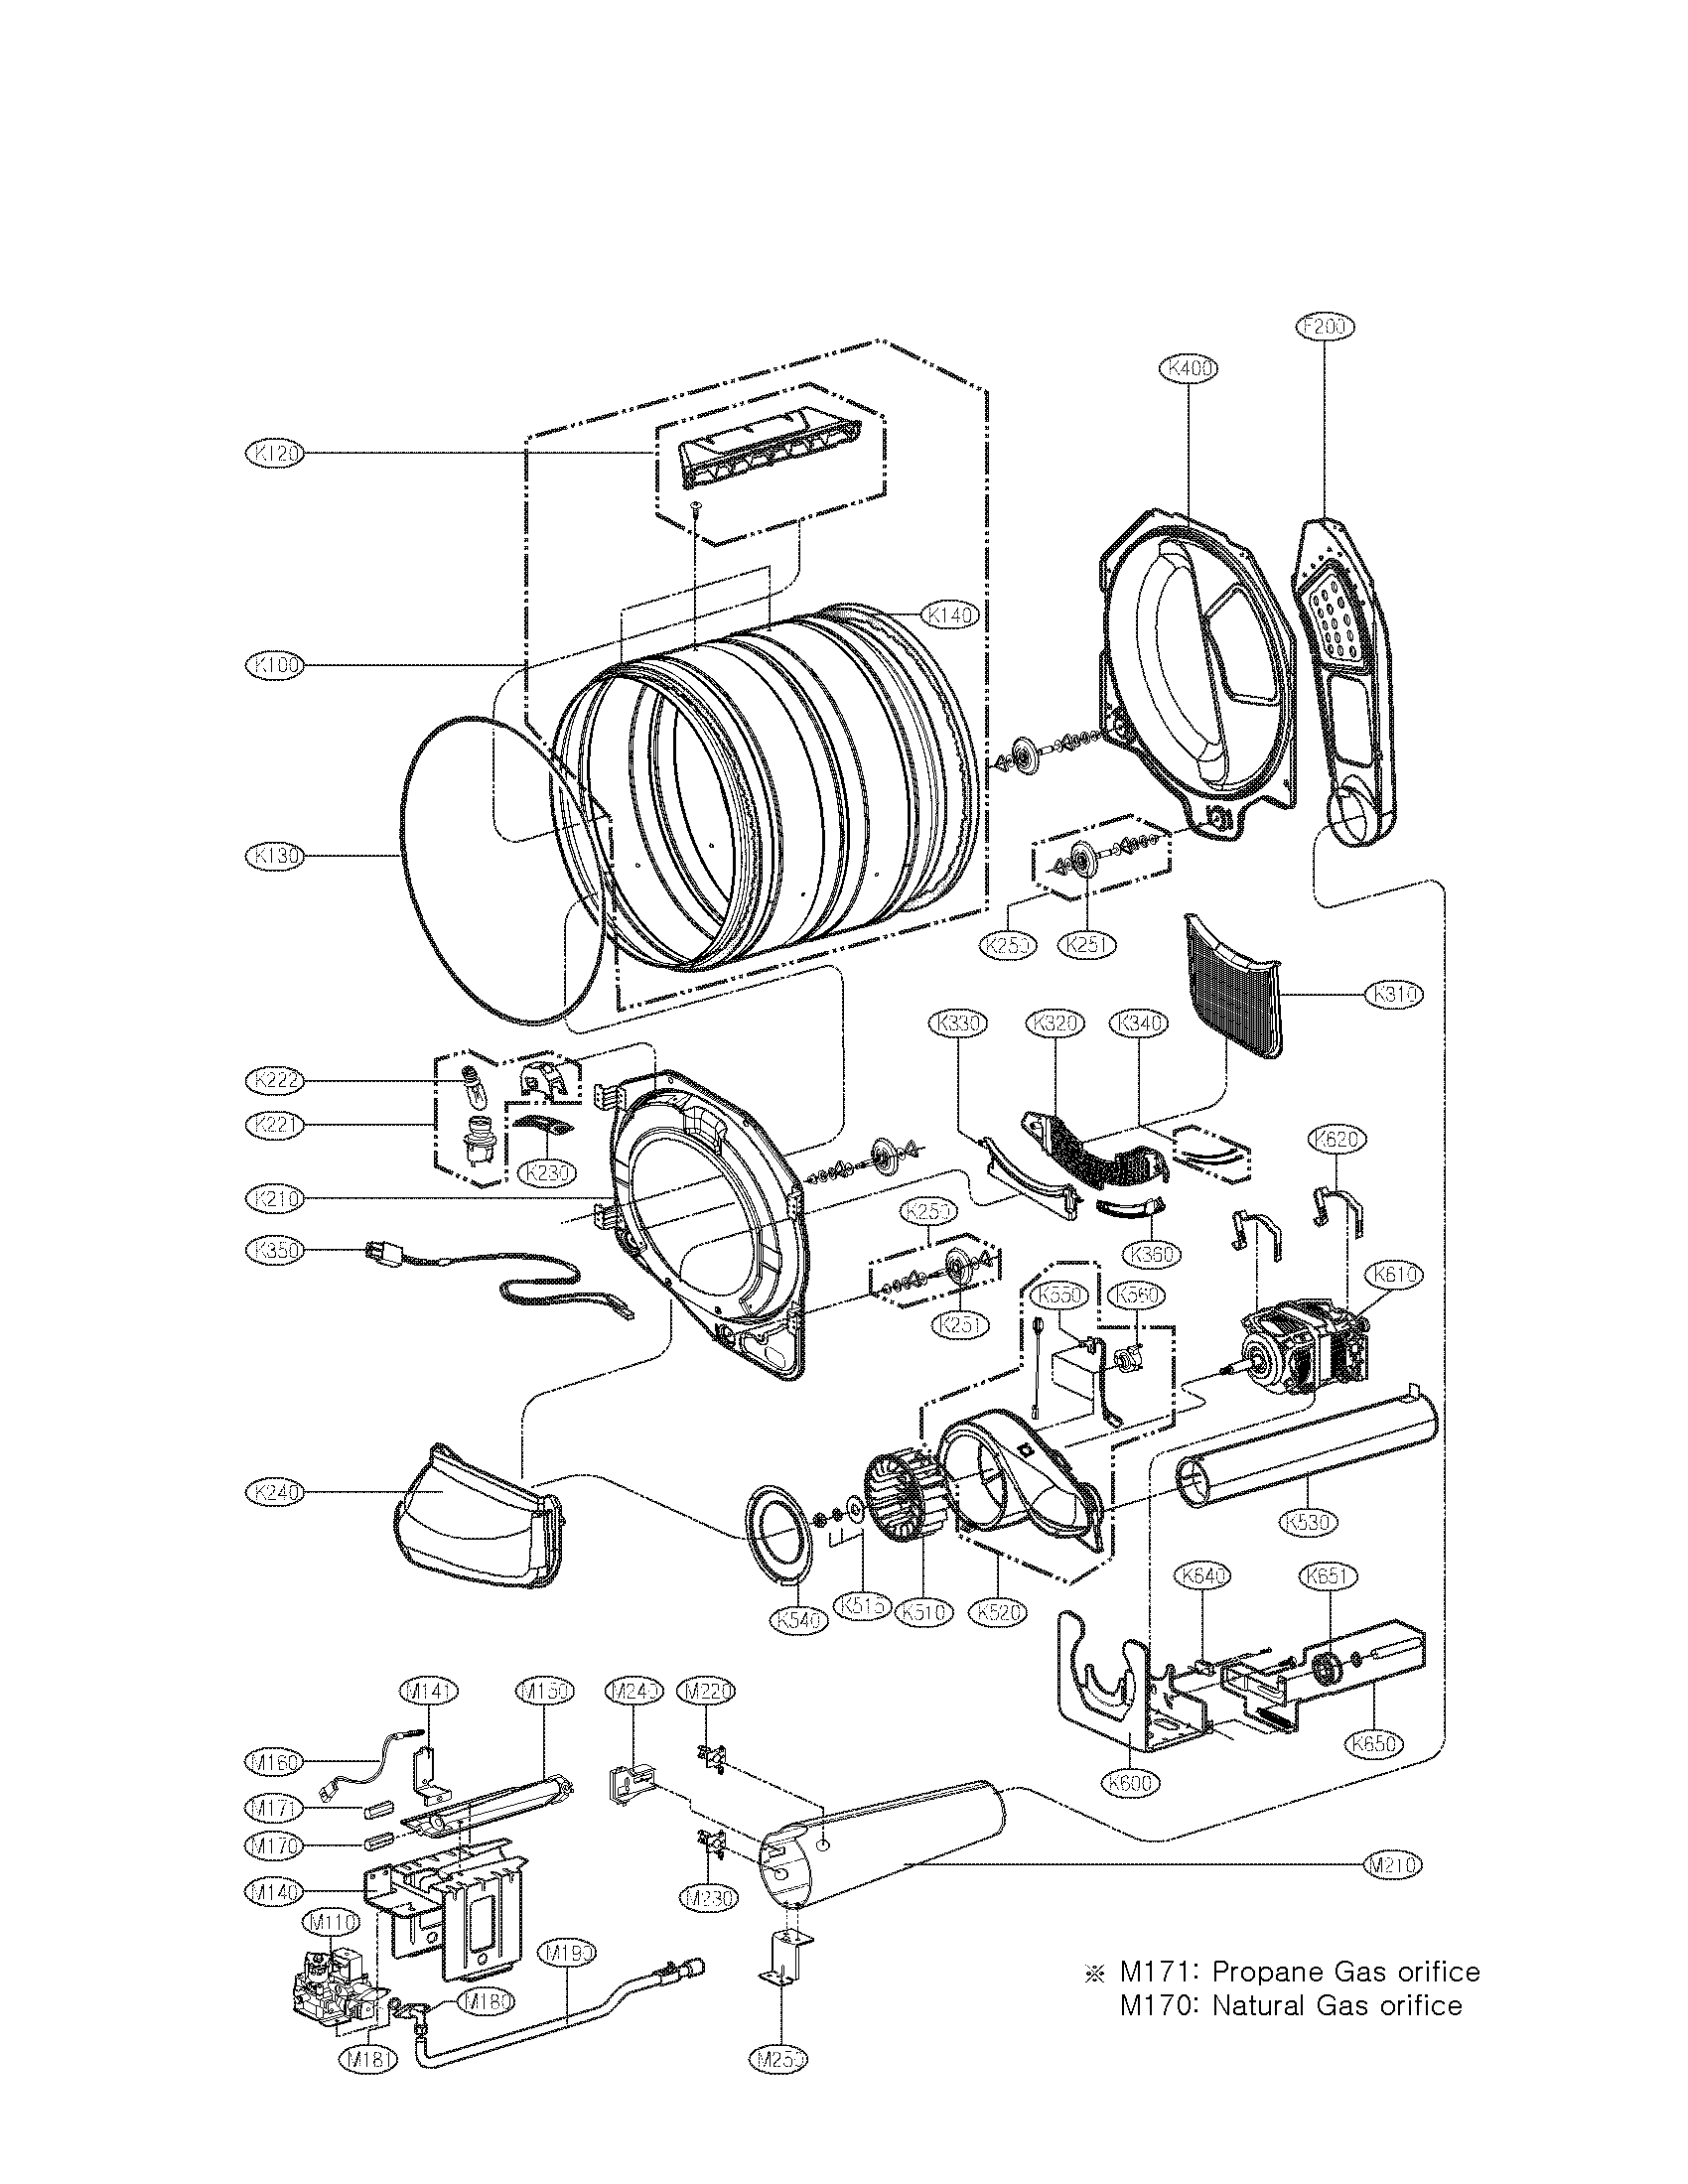 Lg model DLG2102W residential dryer genuine parts